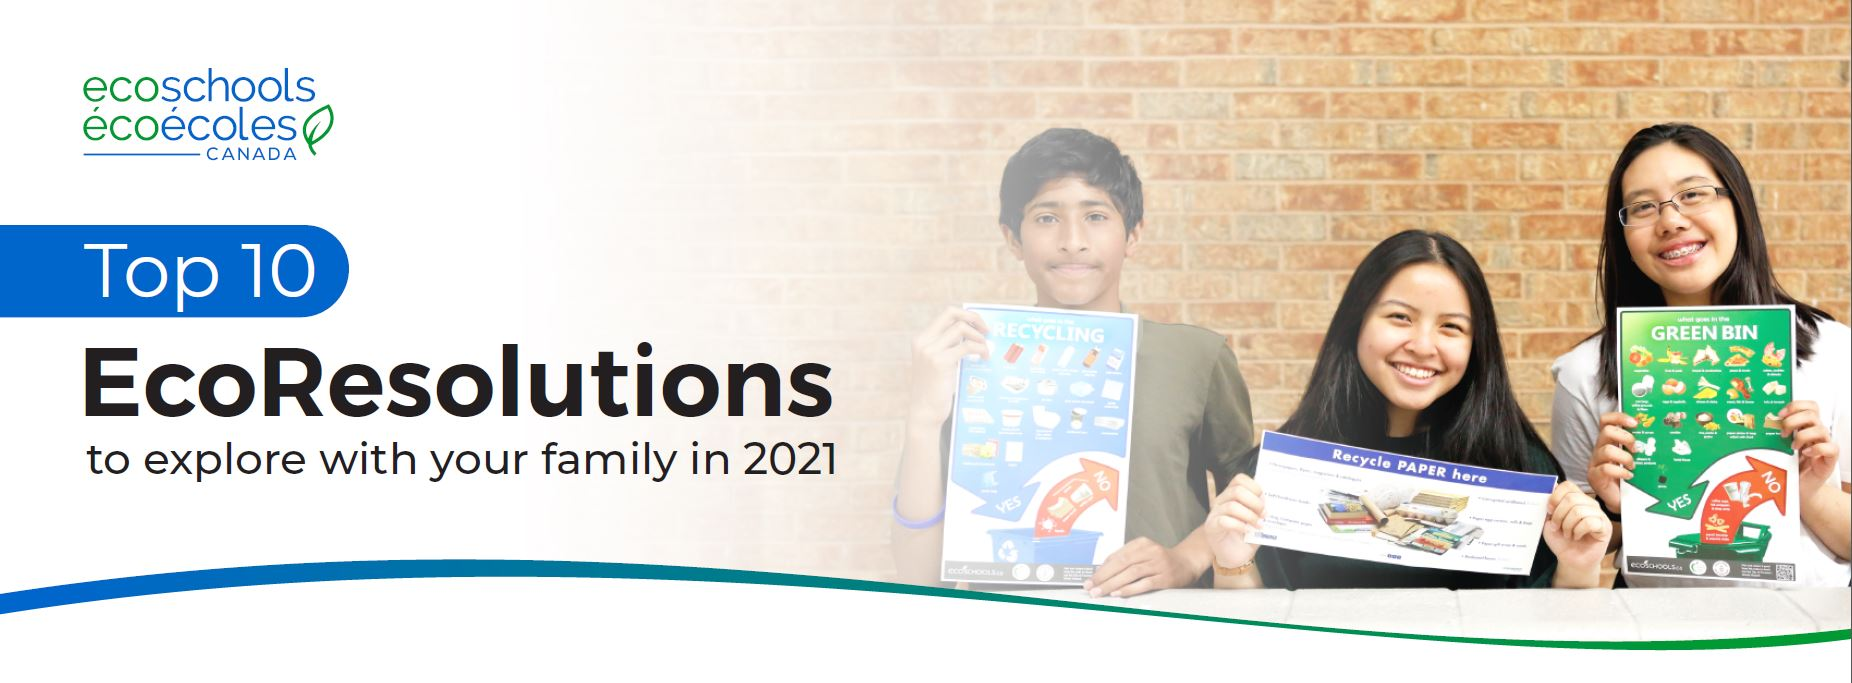 EcoSchools Top 10 Family EcoResolutions